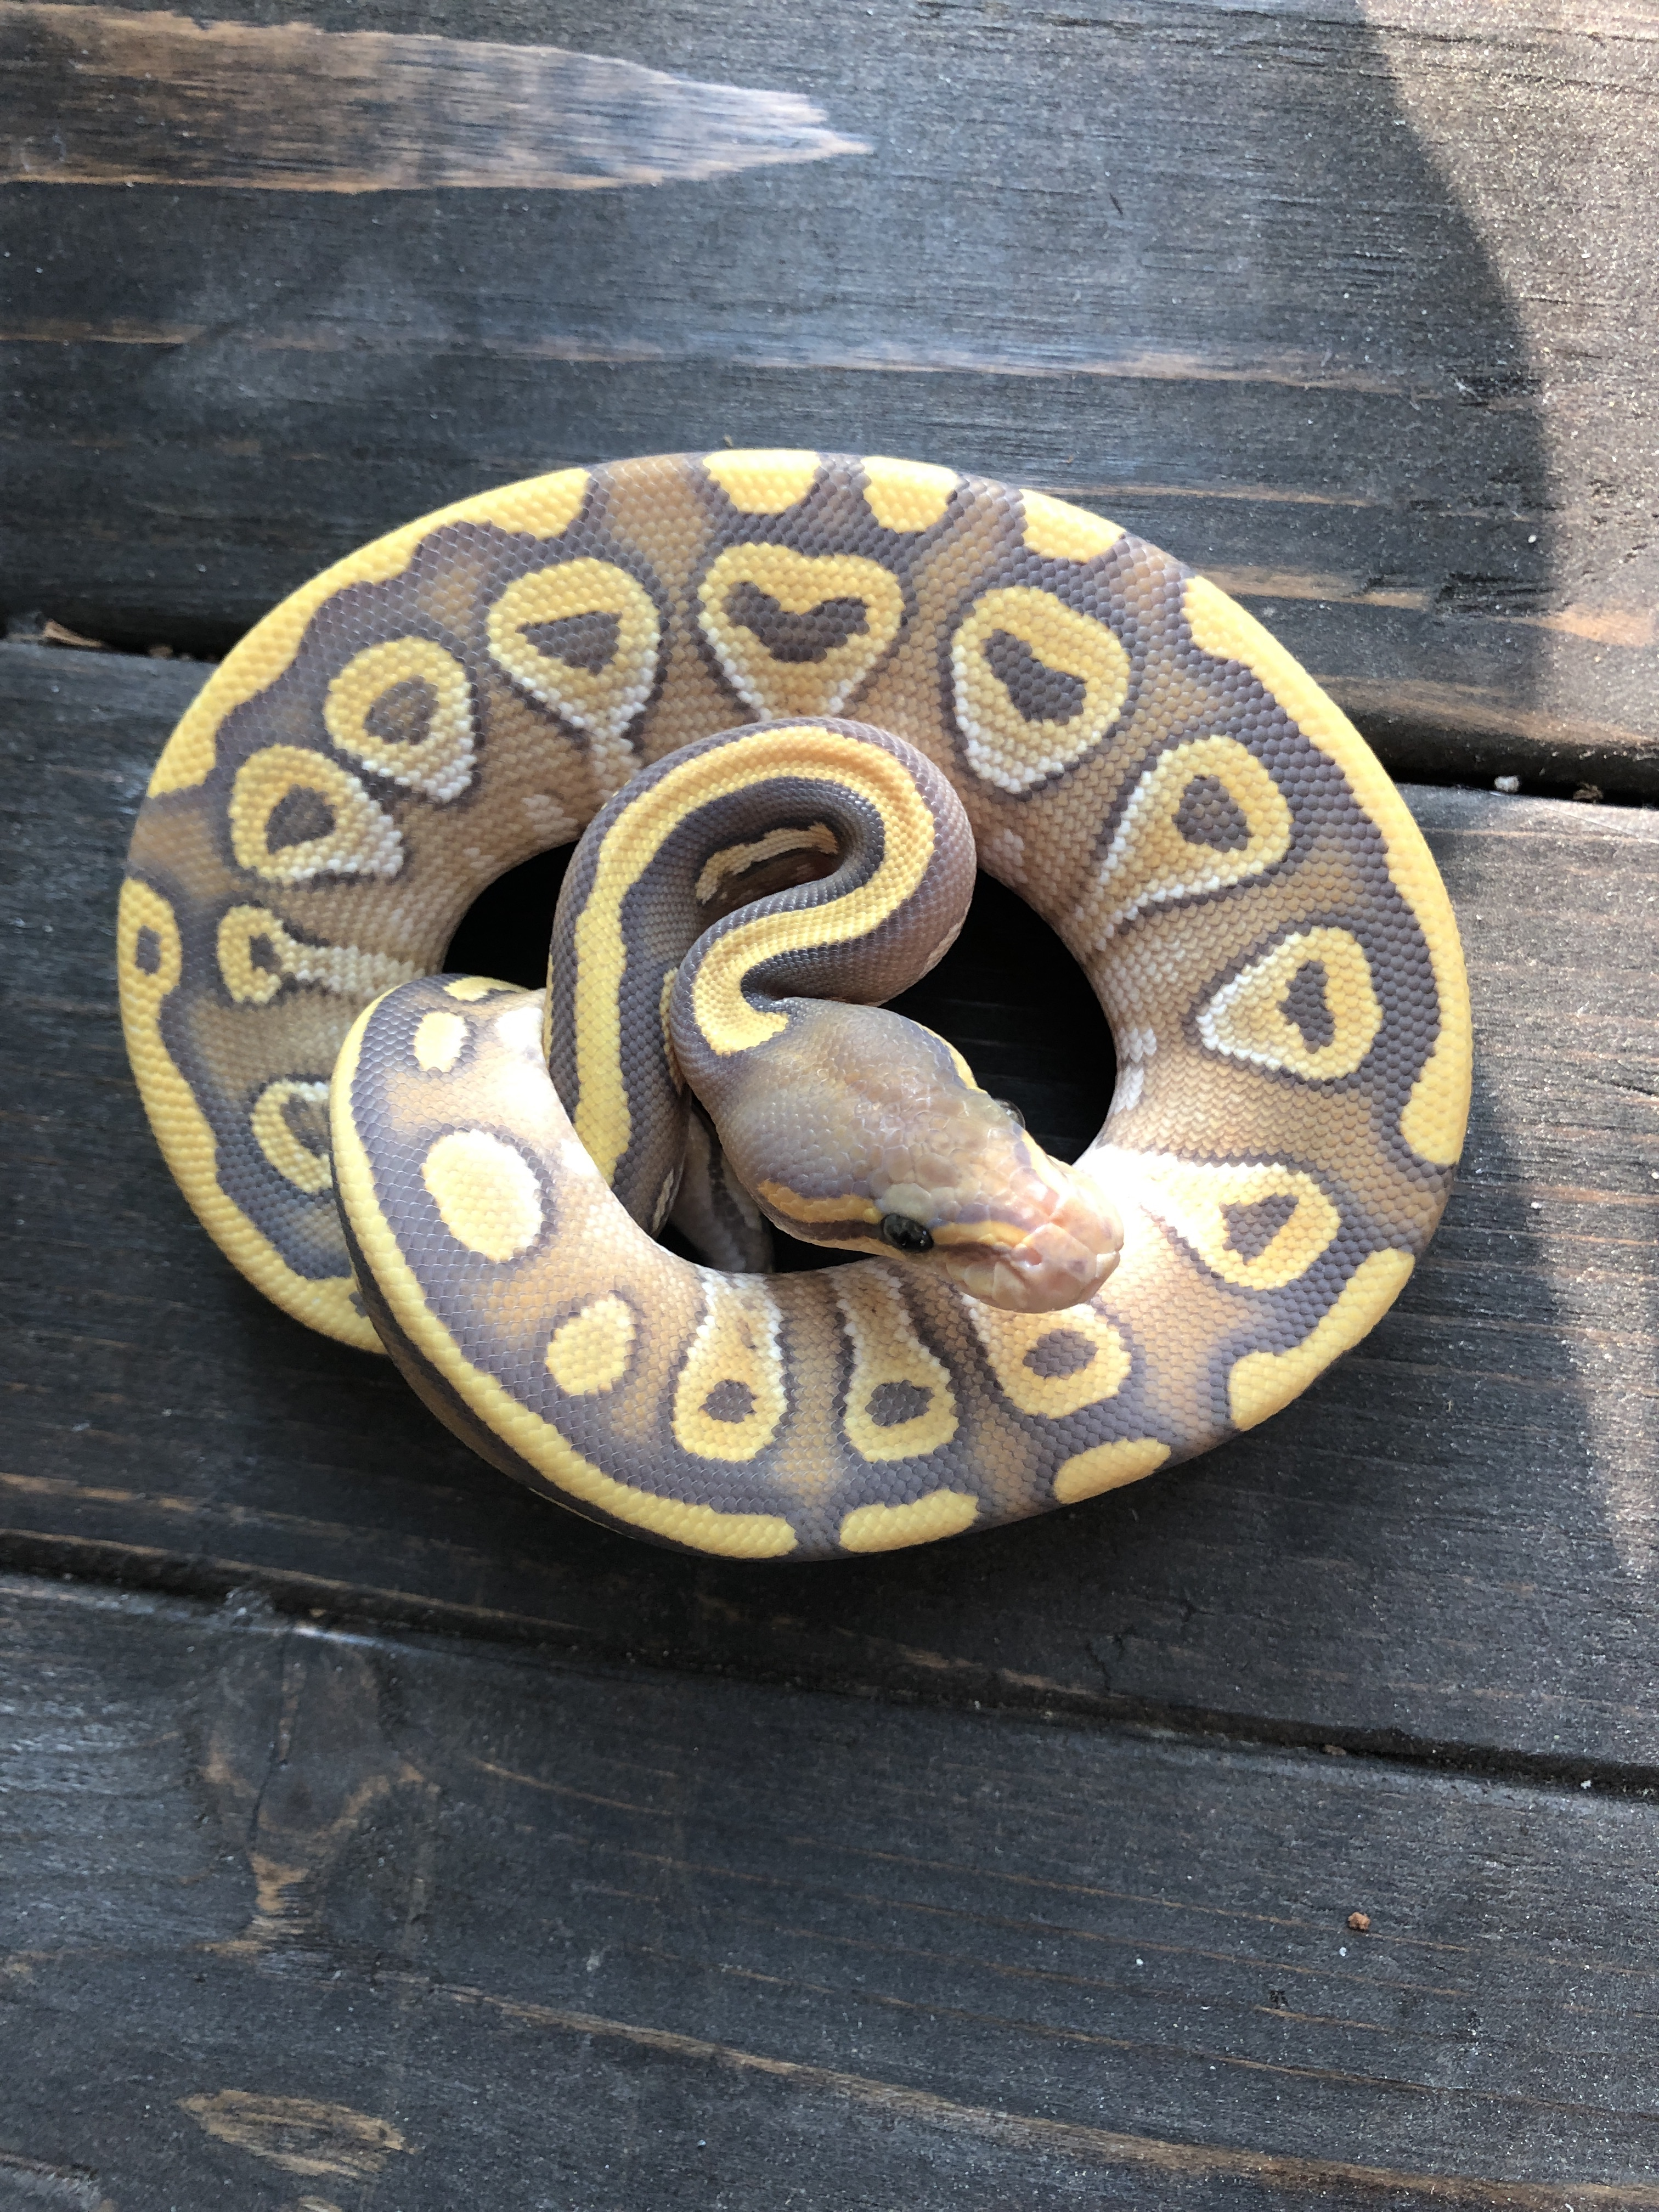 z OUT OF STOCK - ORANGE GHOST MOJAVE BALL PYTHON - CB FEMALE 2020, Python regius (t)2